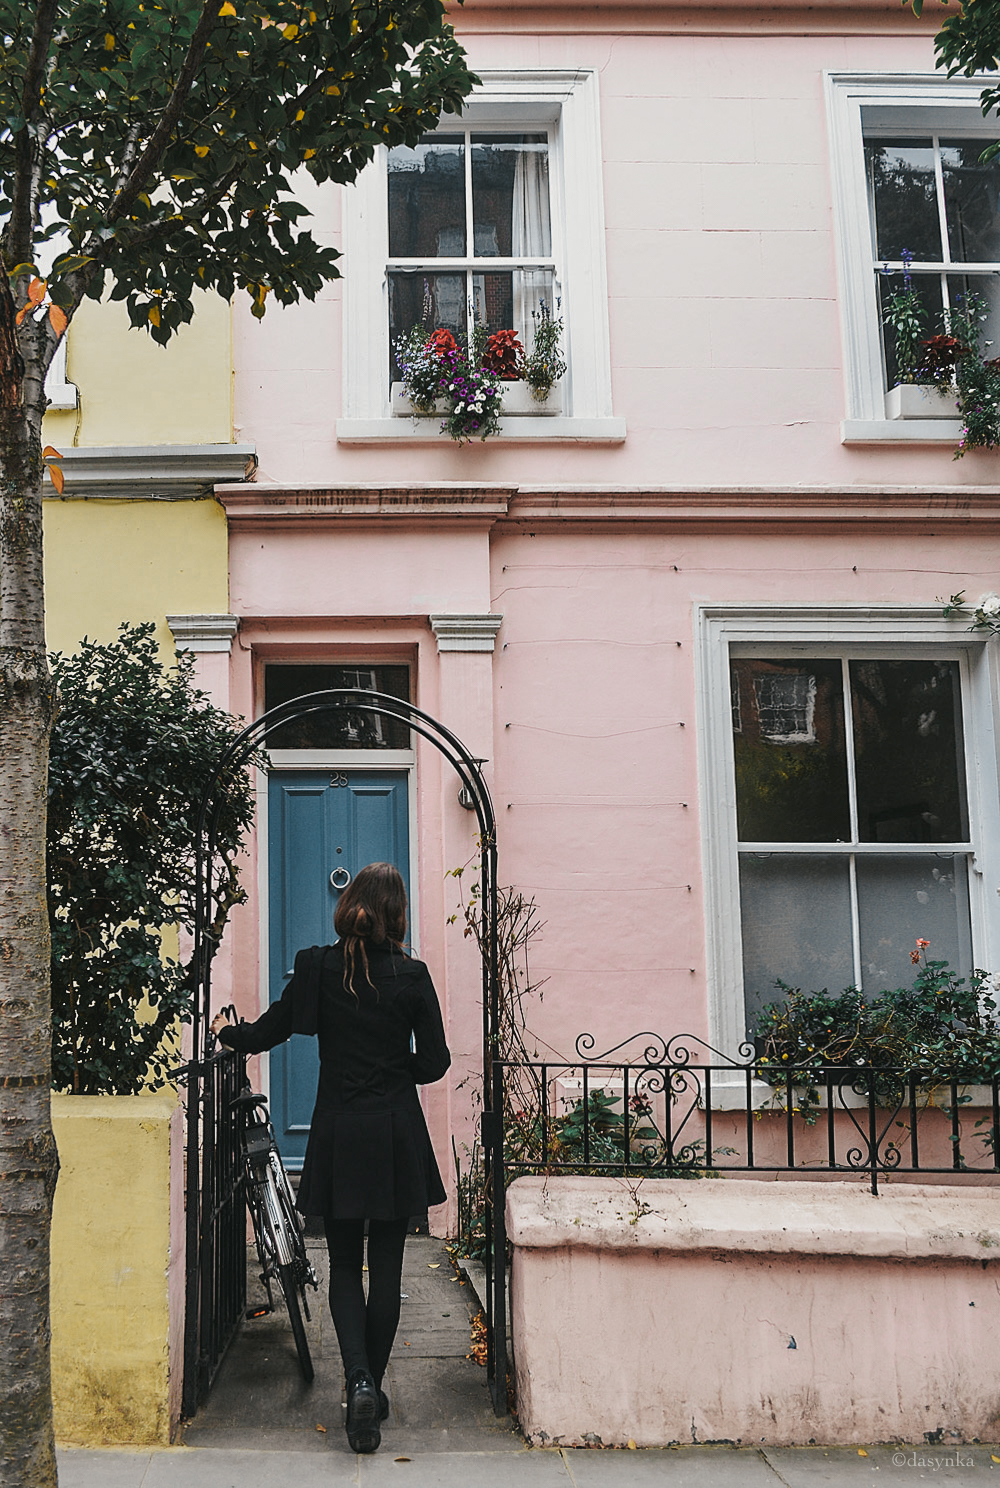 dasynka-fashion-blogger-blog-notting-hill-globetrotter-travel-london-door-houses-colored-pink